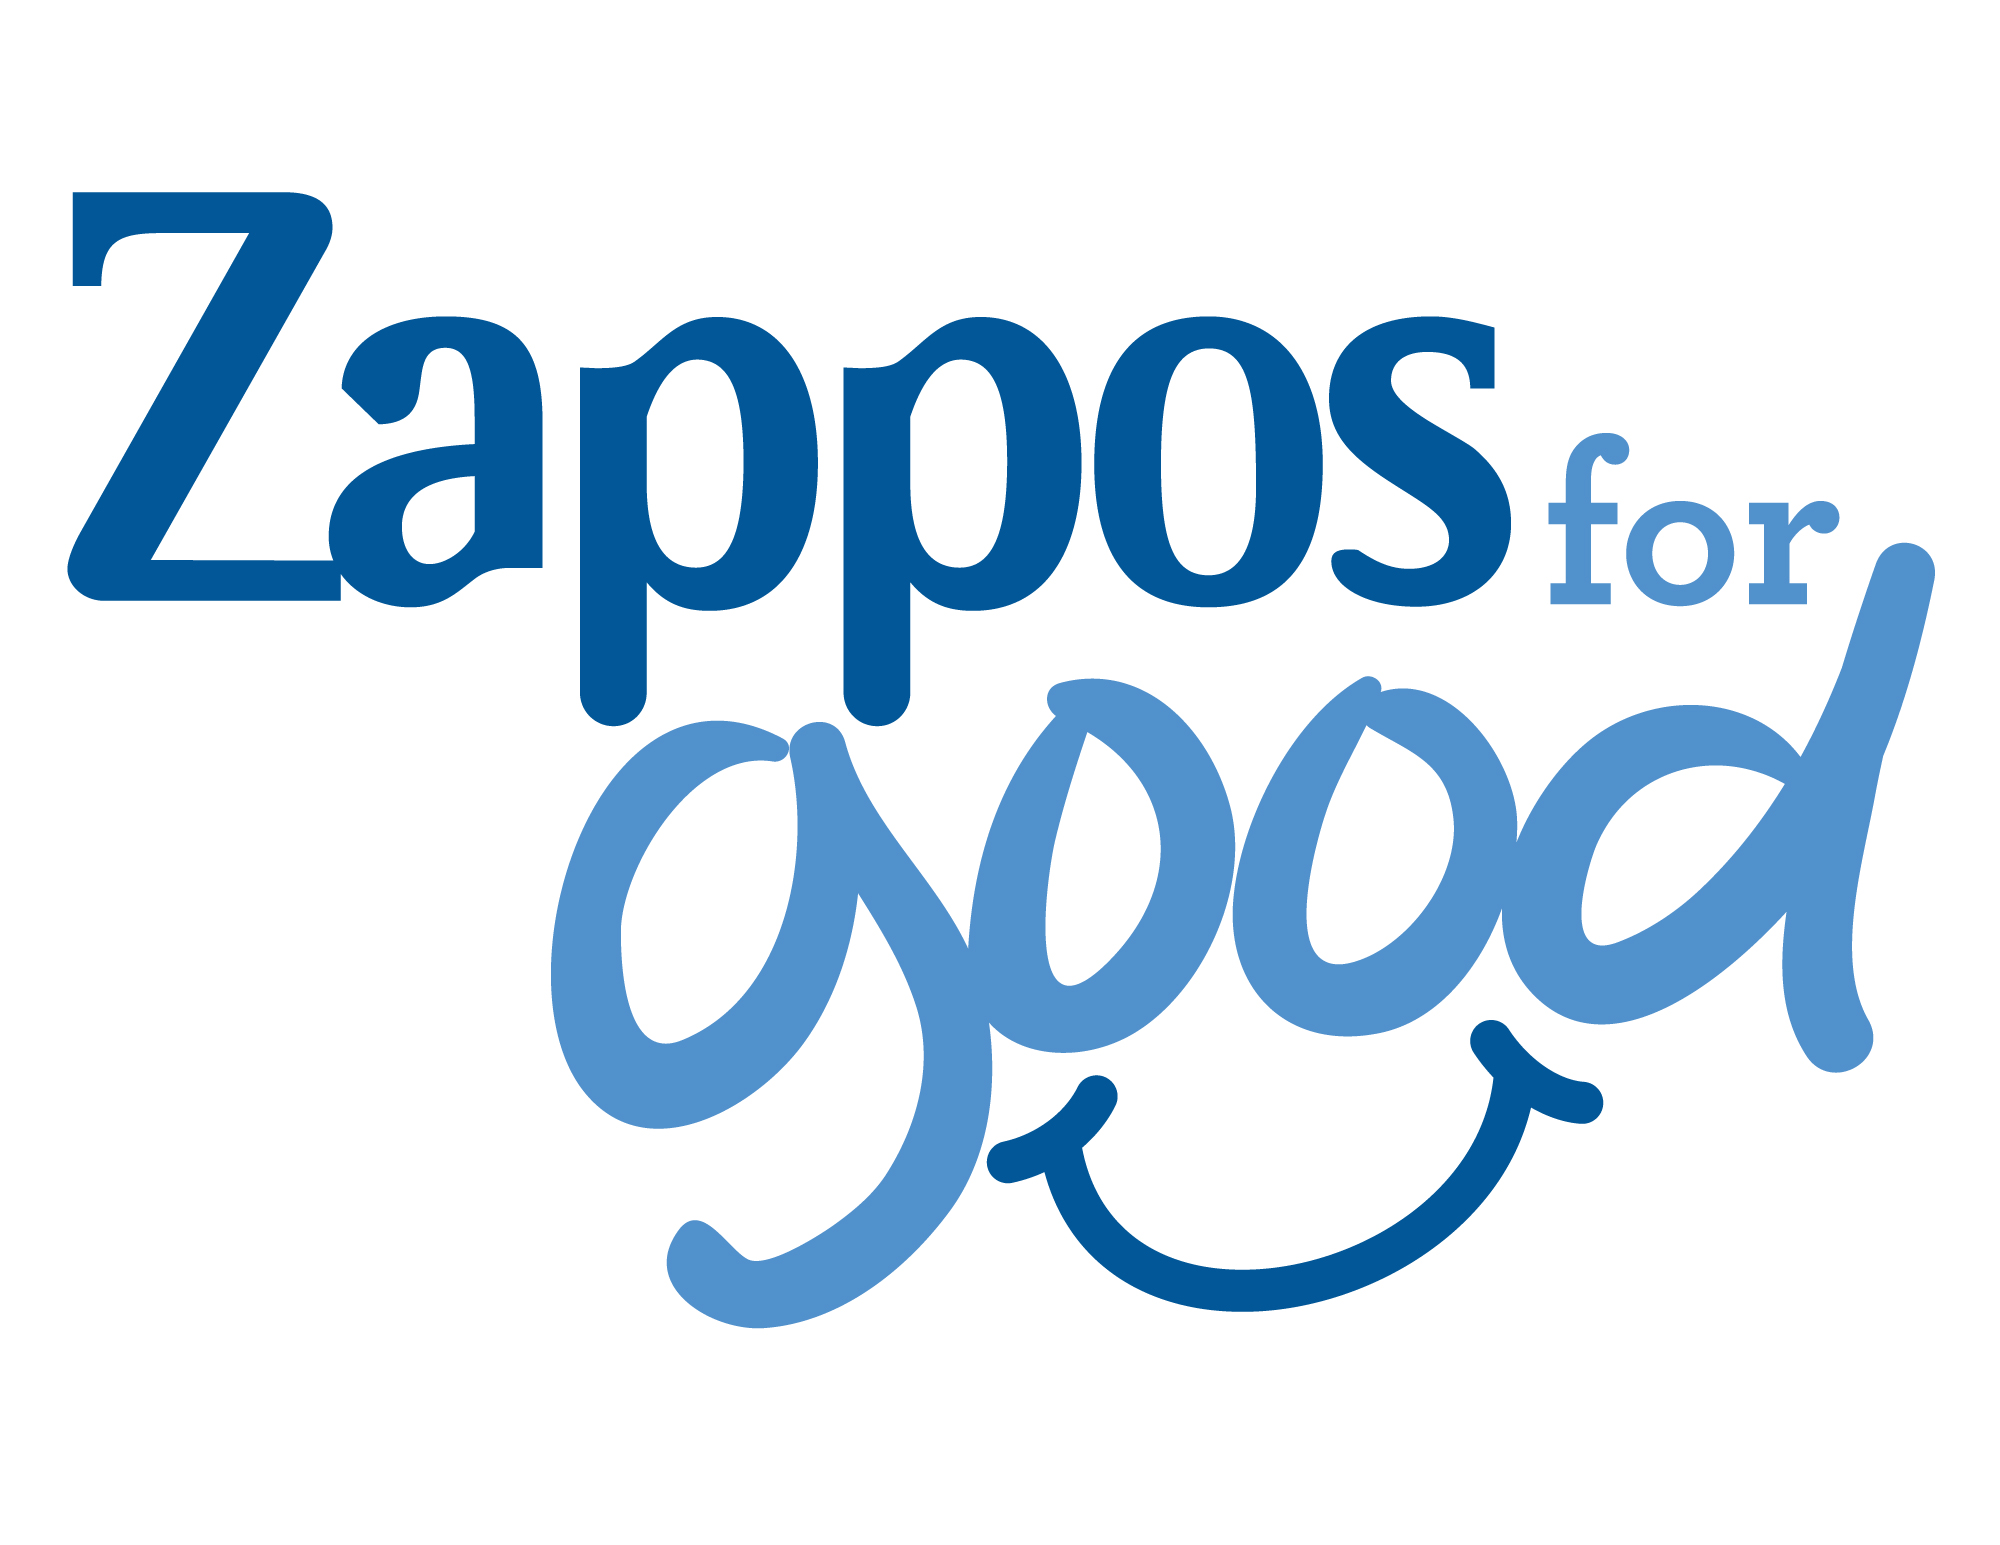 Zappos for good